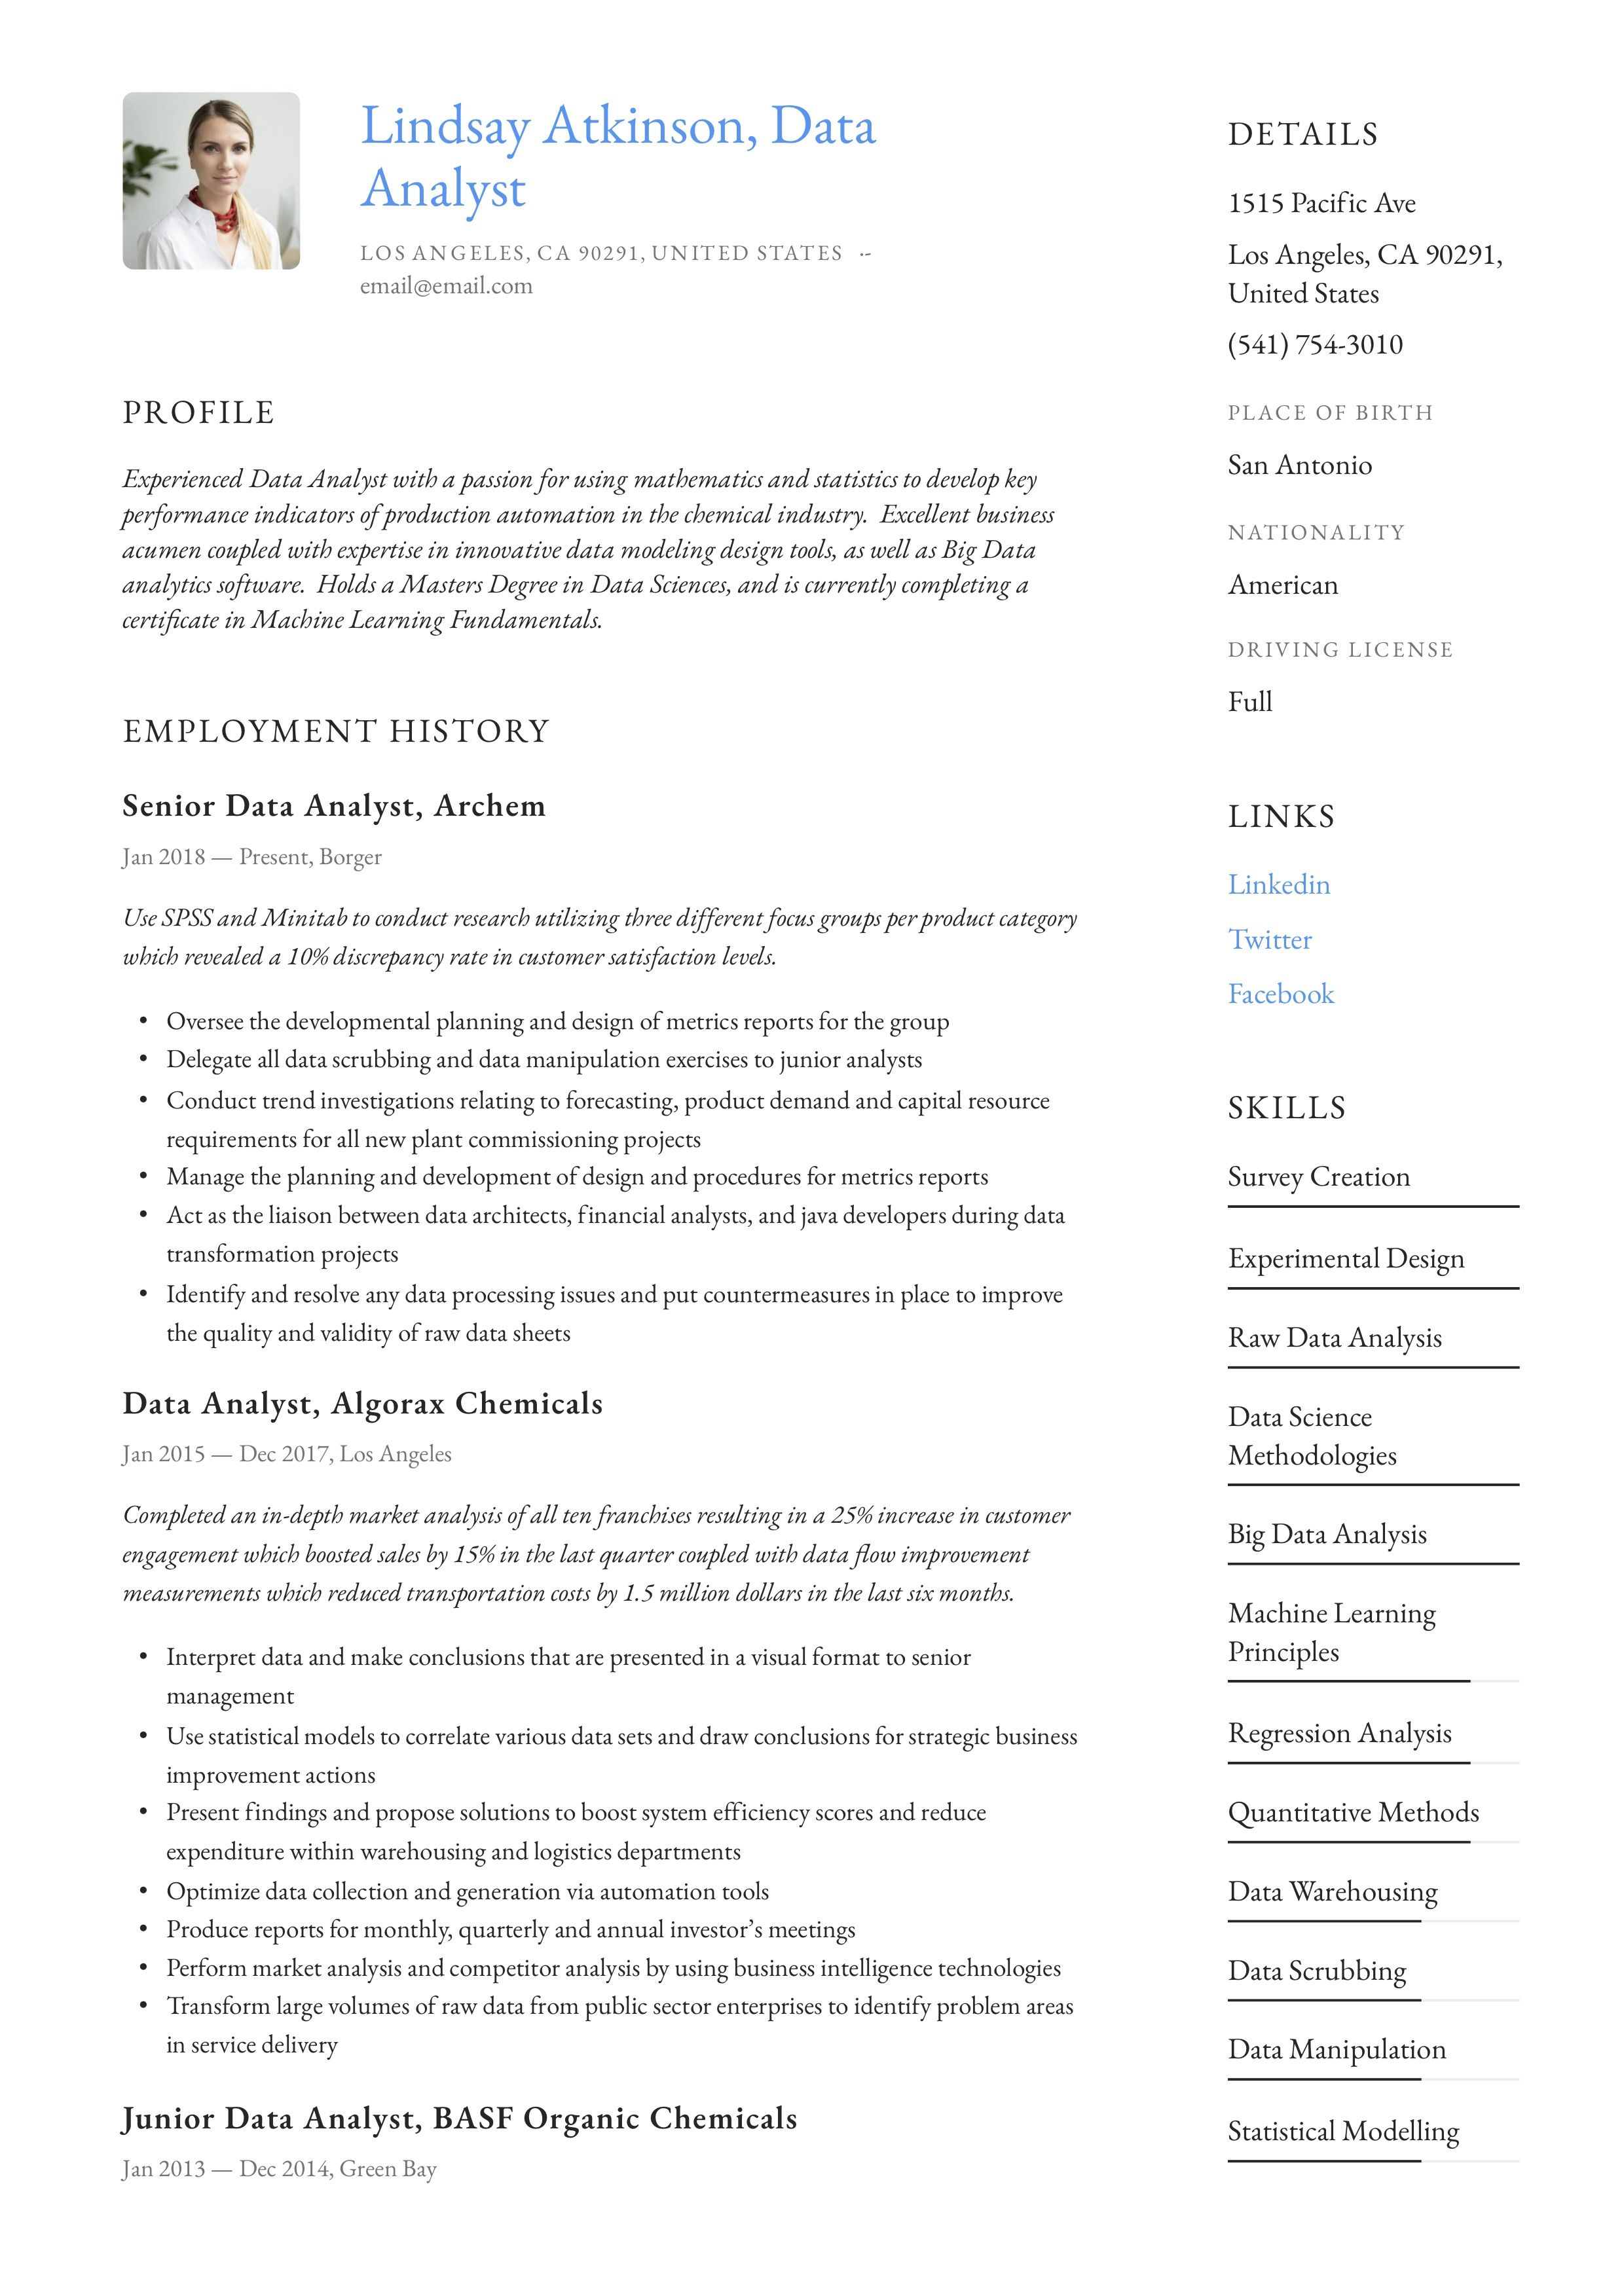 Data Analyst Resume Example in 2020 Sales resume